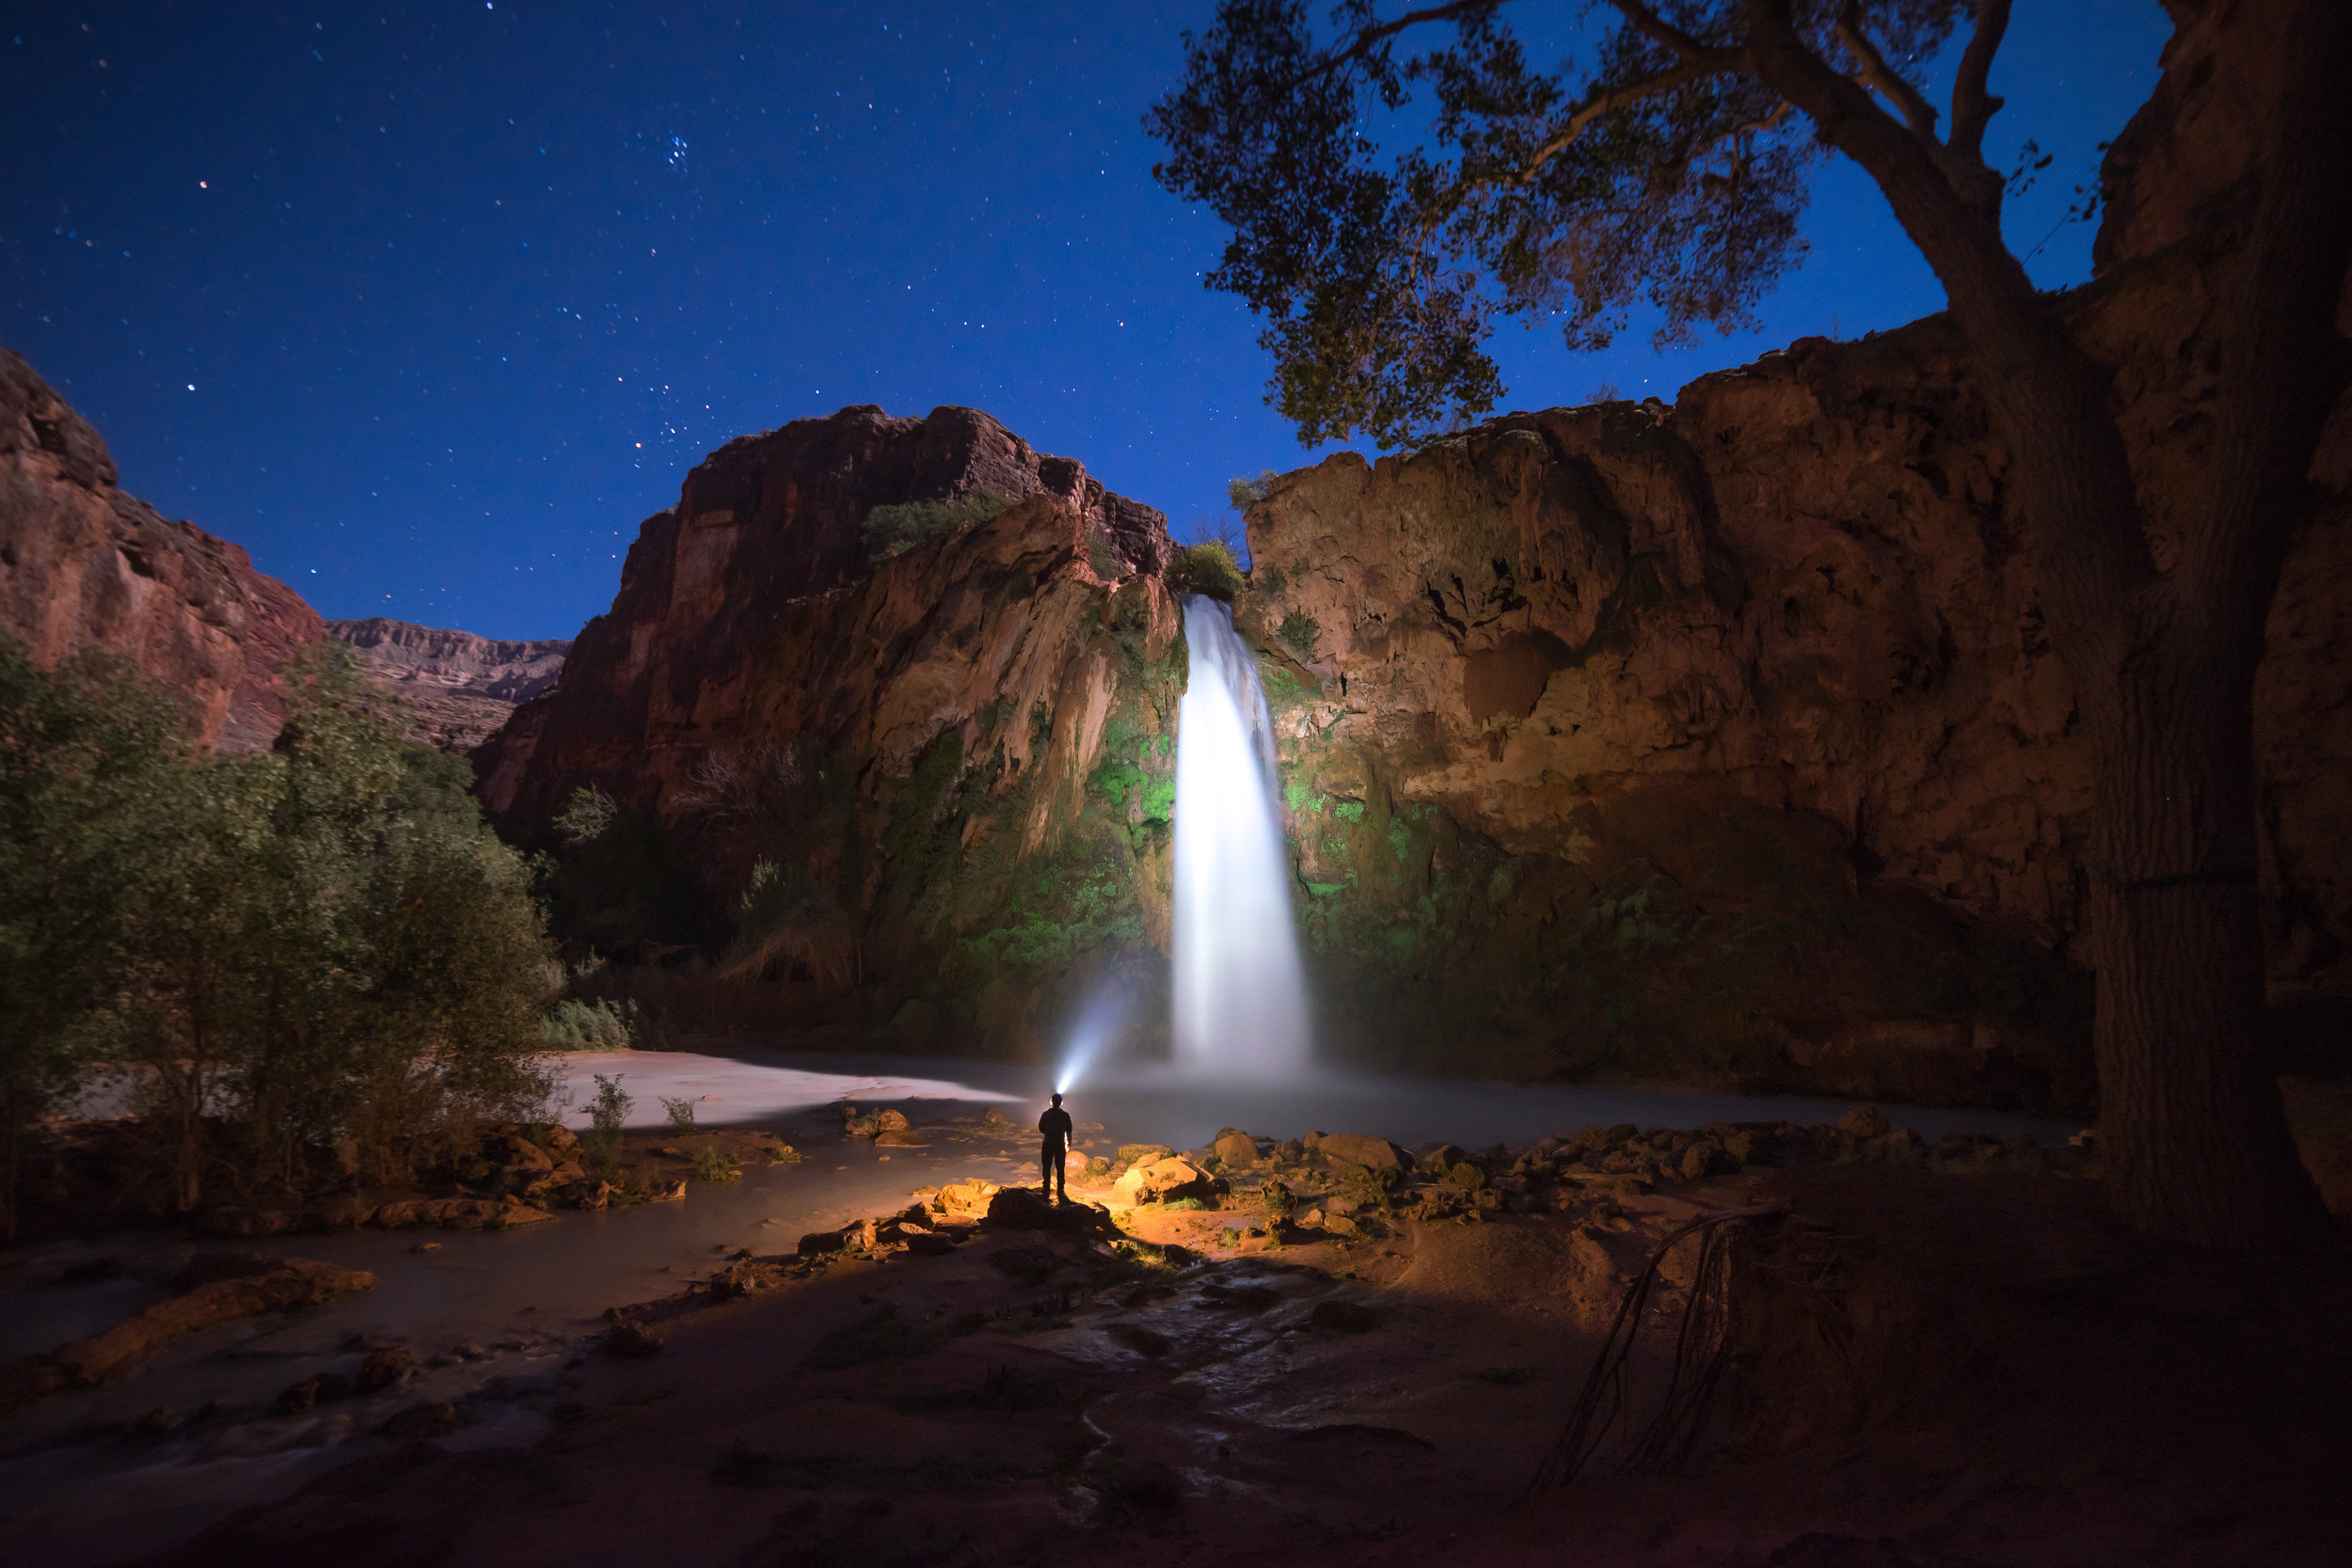 Whether it's a full moon or the Milky Way is out, you don't want to miss out on experiencing Havasupai after dark. Some of the best memories are made after the sun goes down!